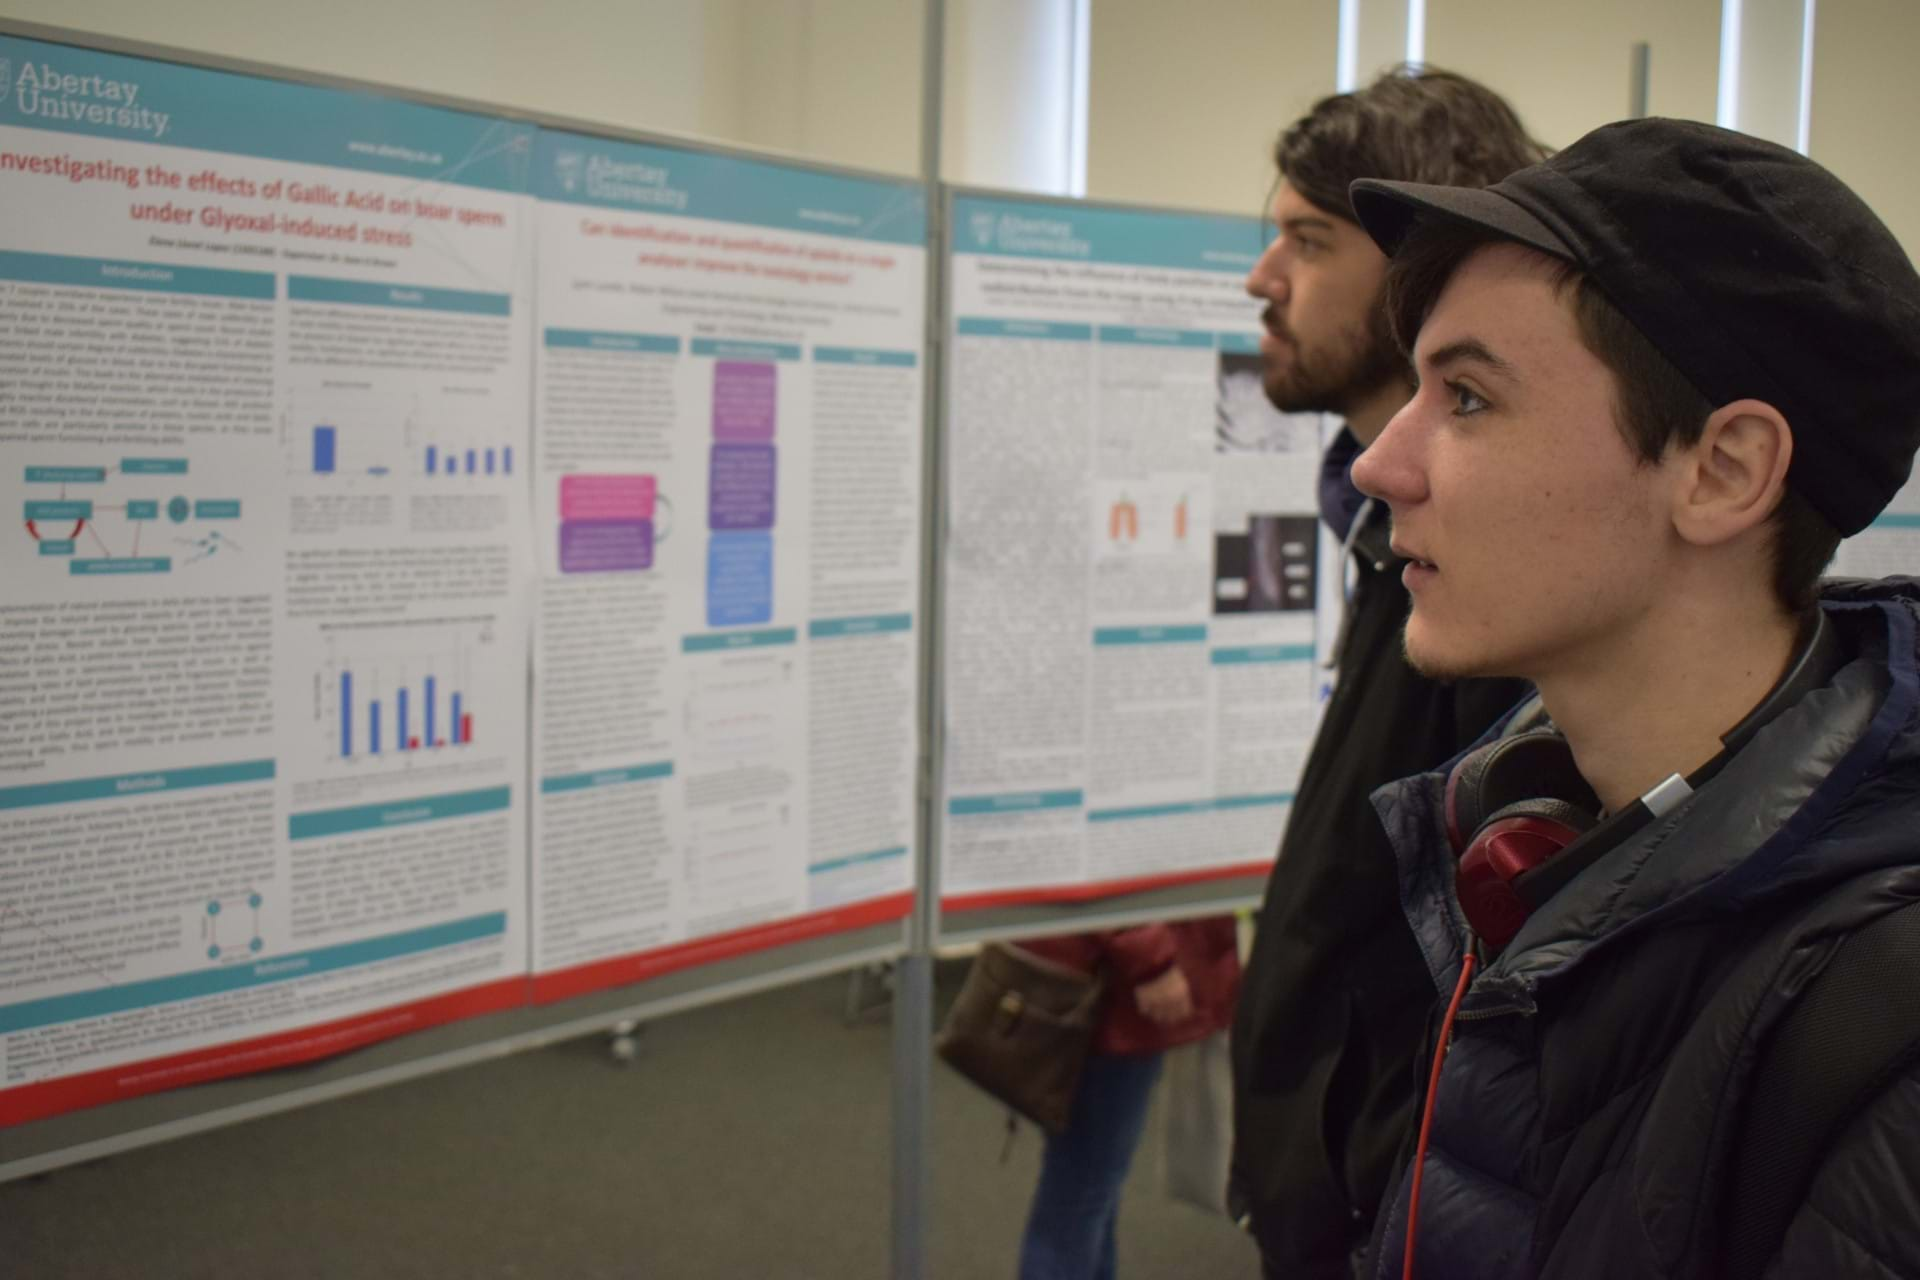 People looking at posters at the Science Degree Day